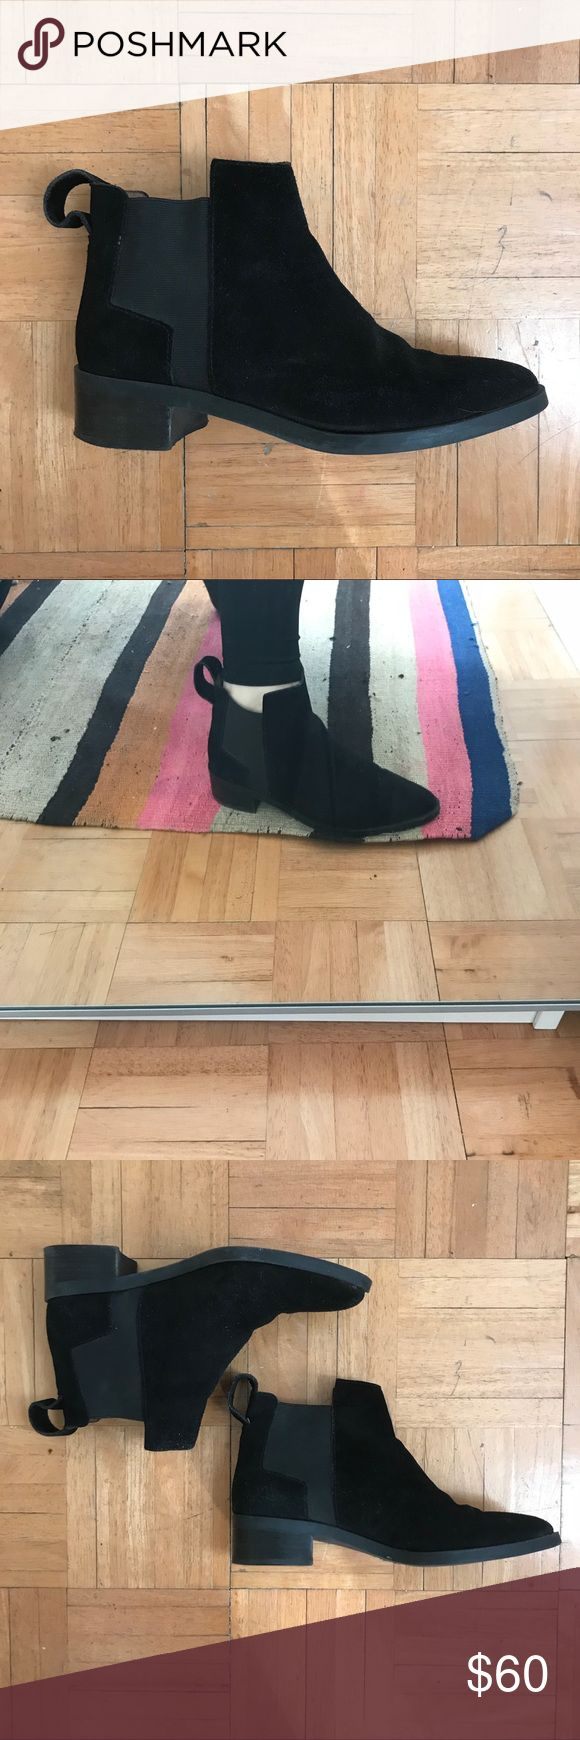 &other stories Black suede Chelsea boots US size 7 Only worn a few times, very comfortable, chic and easy to wear Chelsea boot in beautiful black suede.   Currently on &other stories website for $155!   Leather tab to easily pull up Cushioned leather insole Rubber coated man-made outsole Heel height: 3.5 cm / 1.4in & Other Stories Shoes Ankle Boots & Booties